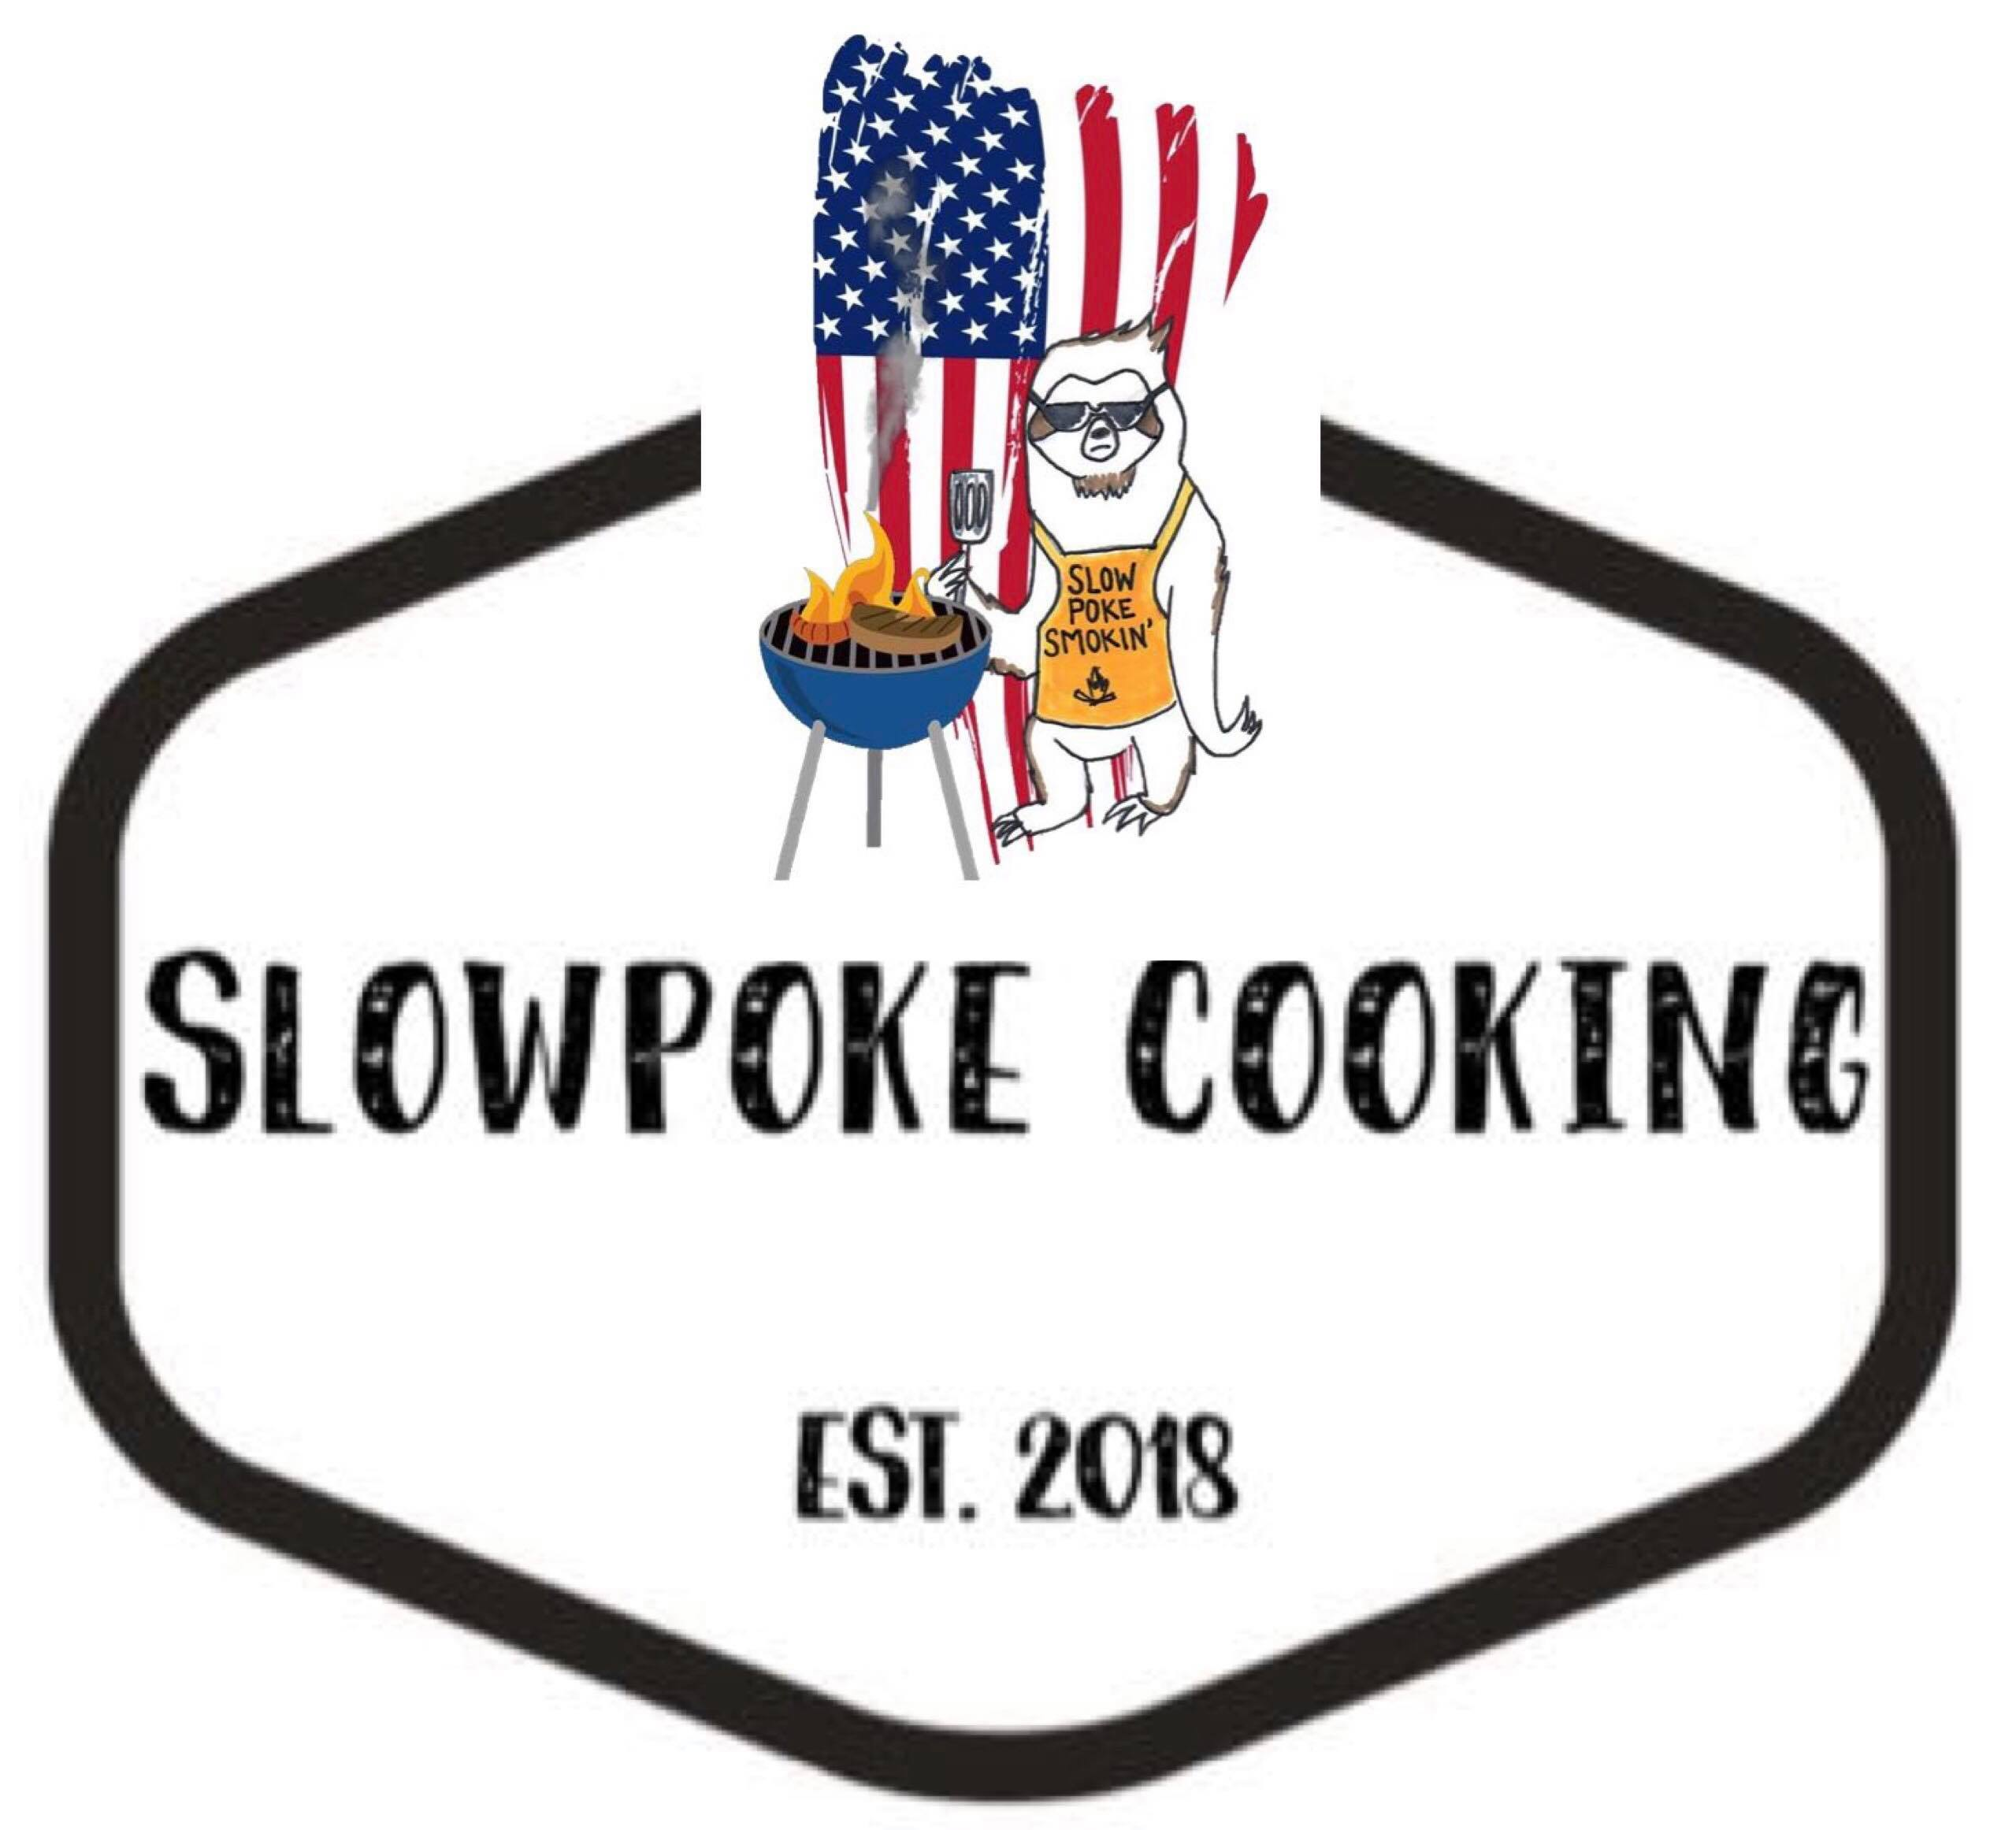 Slow Poke Cooking logo